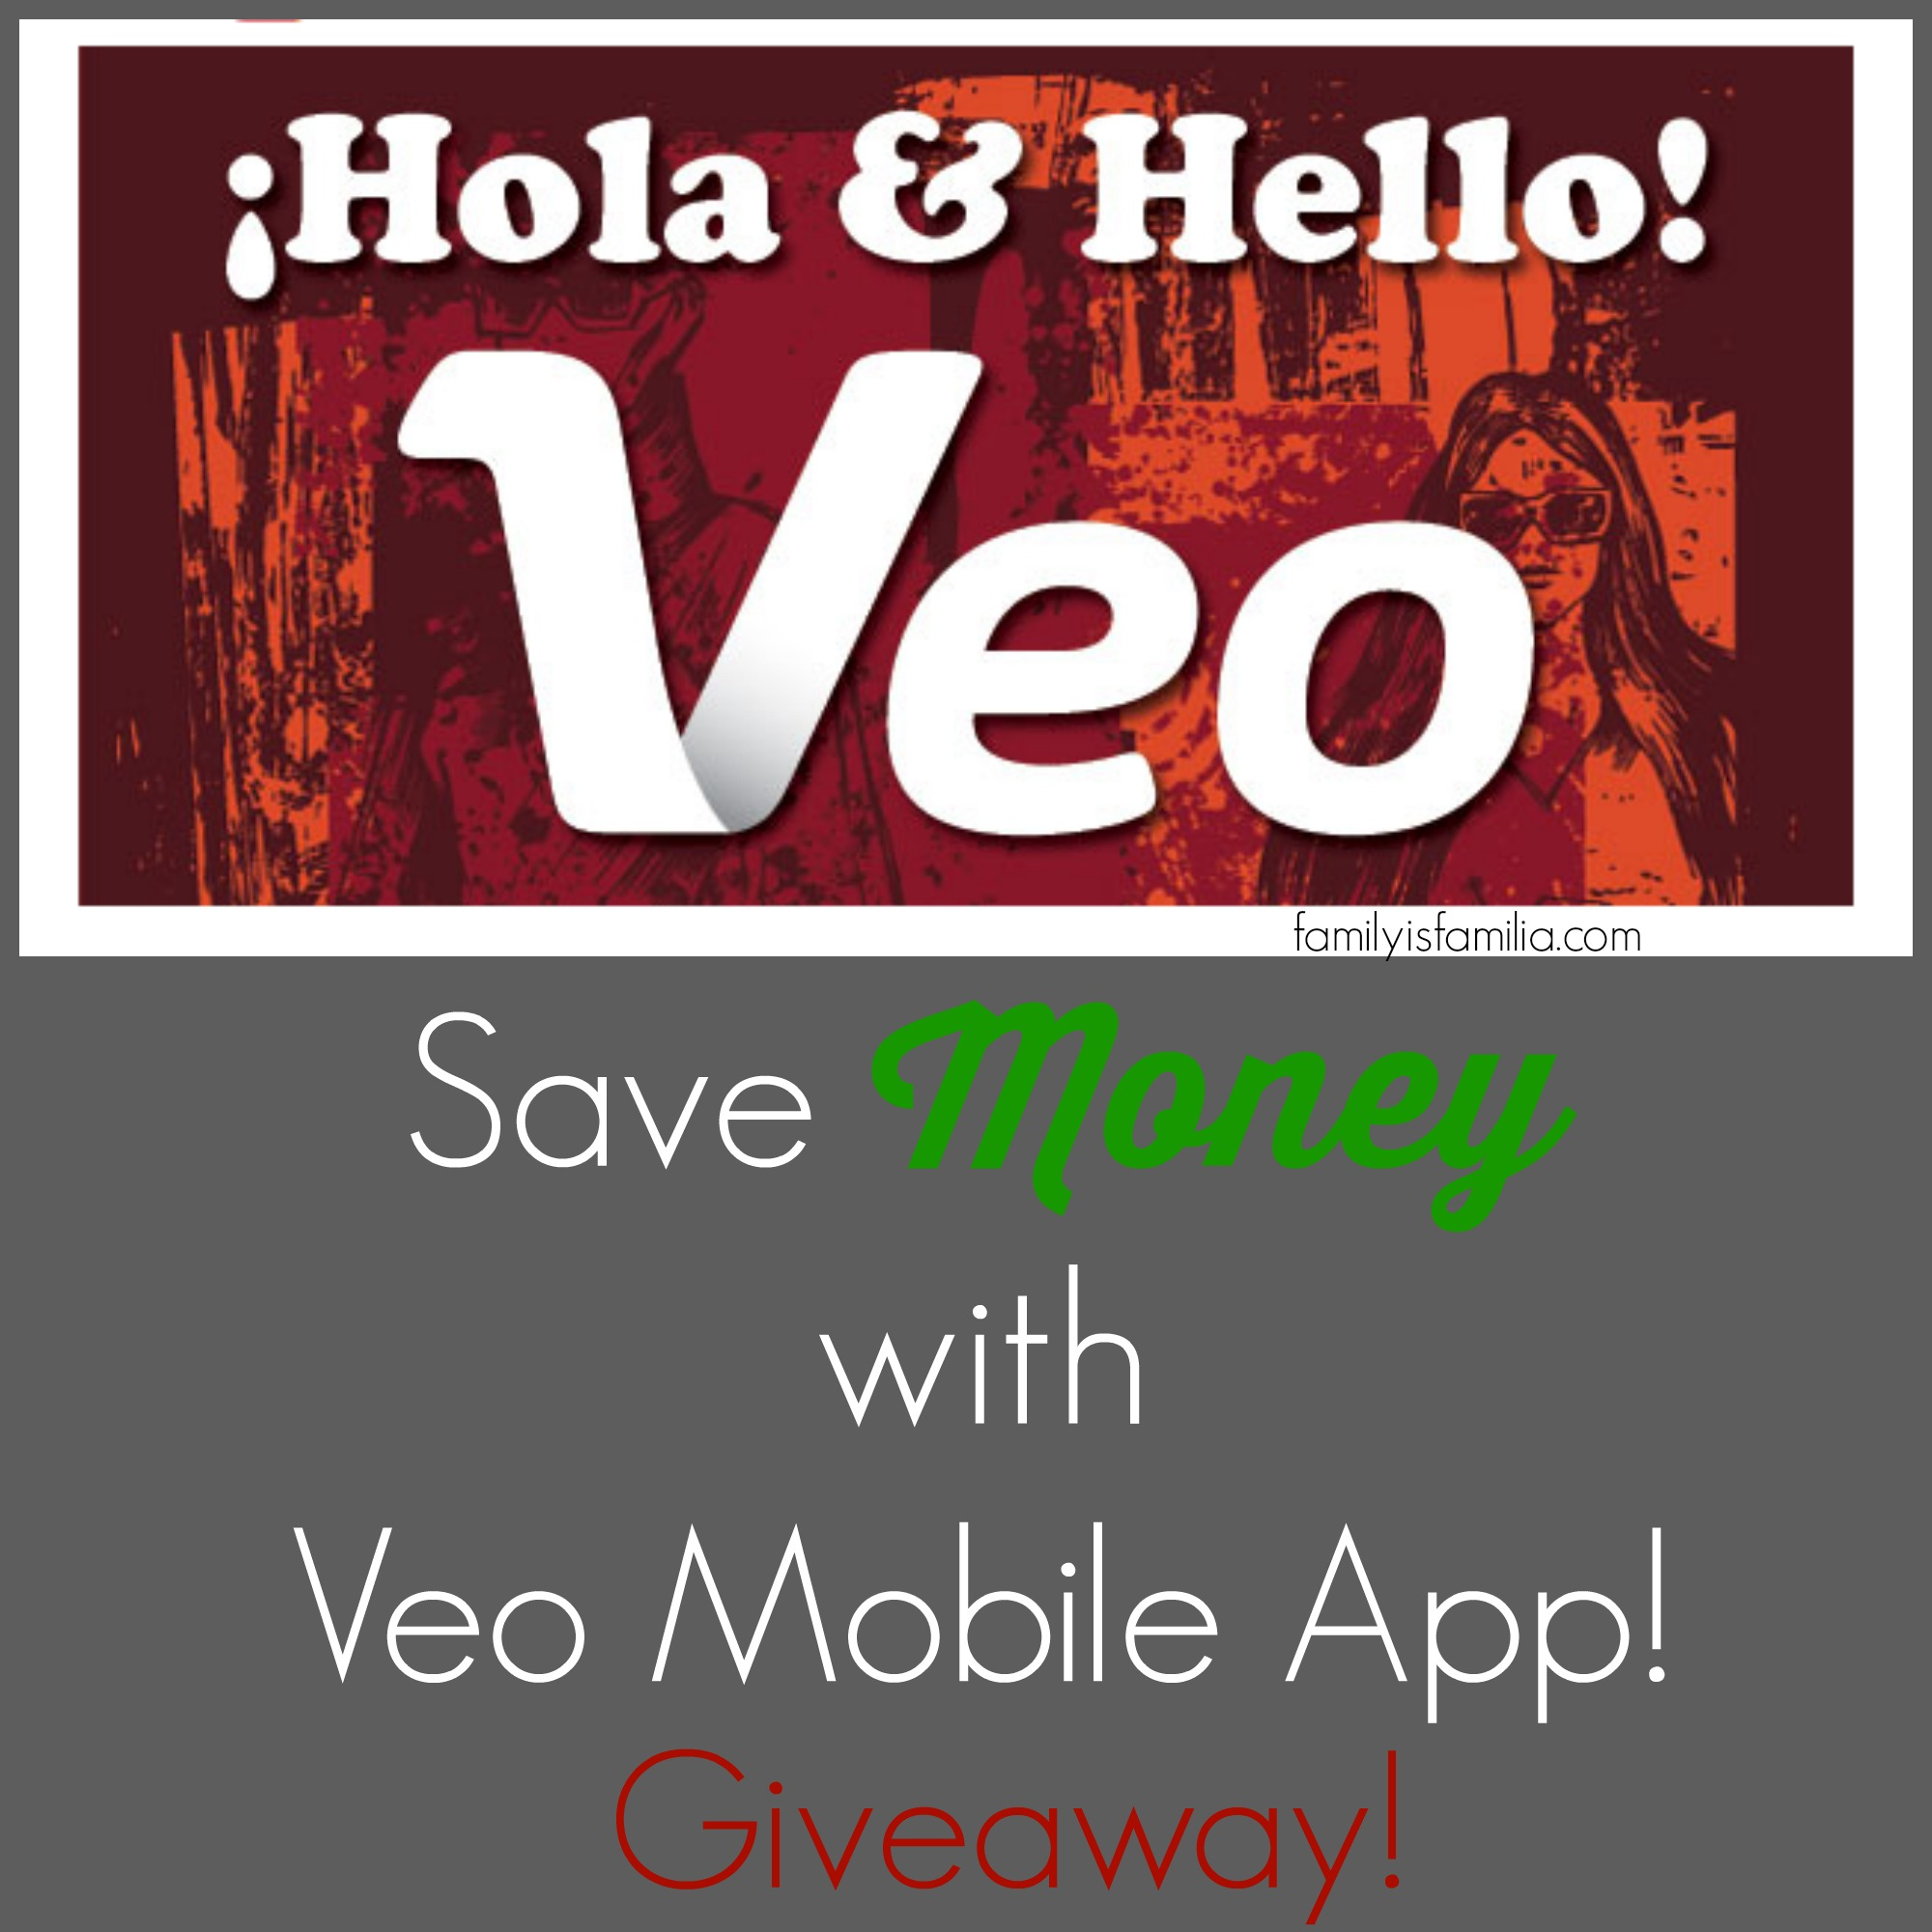 saving-money-veo-mobile-app